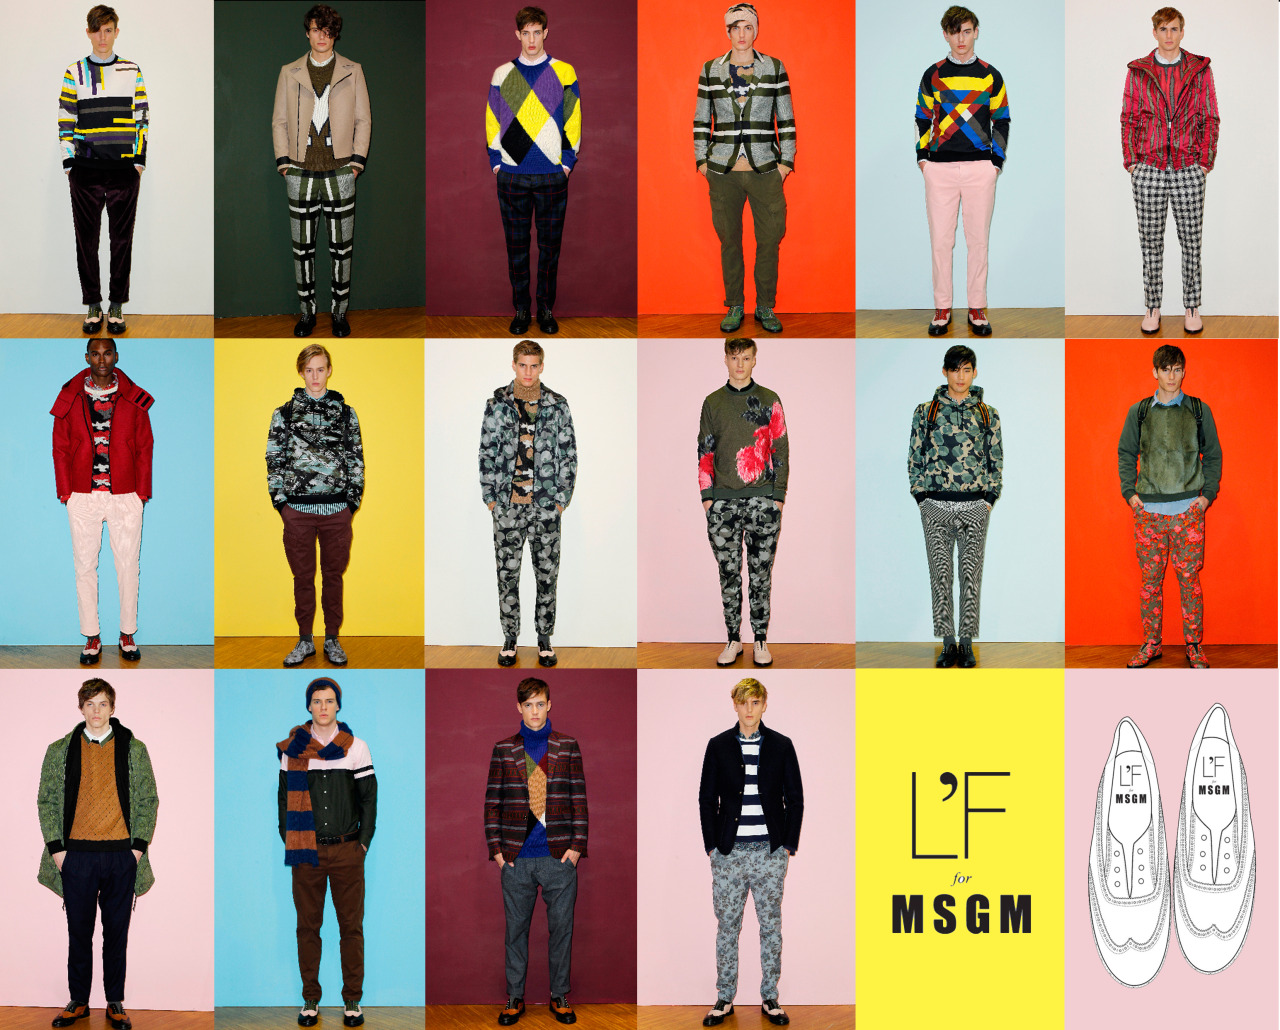 L'F shoes designed exclusively for MSGM